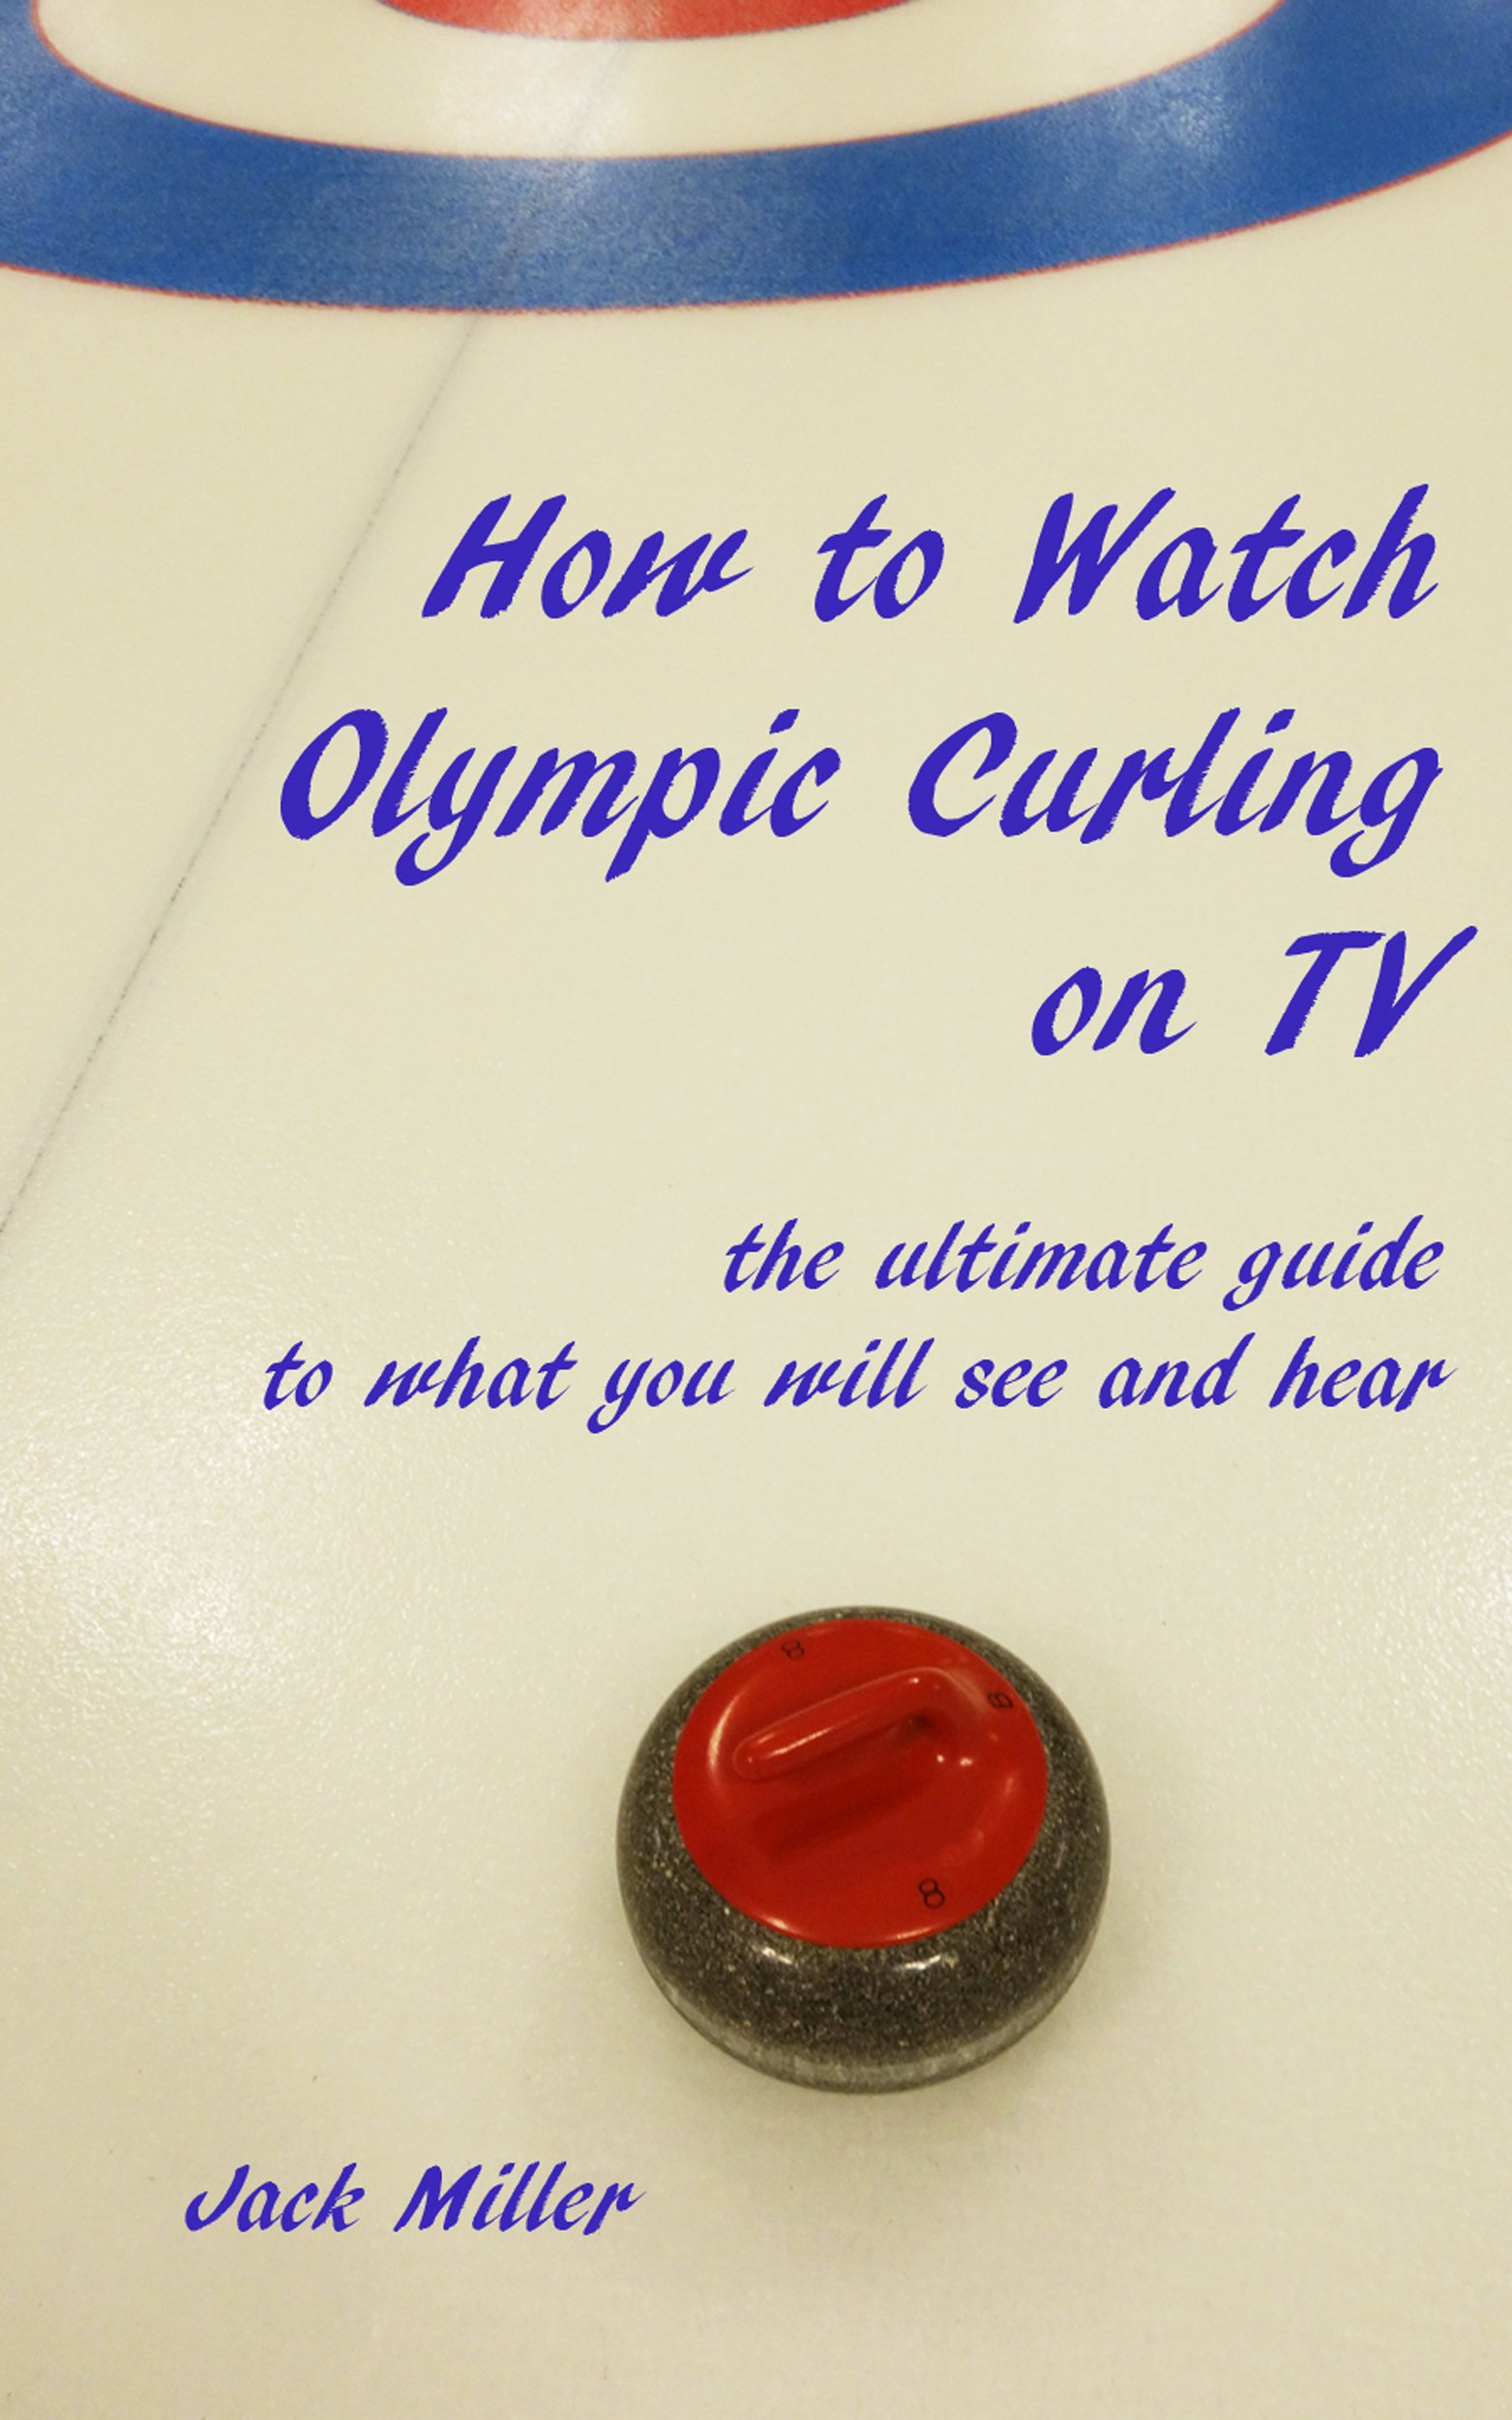 How to Watch Olympic Curling on TV: the ultimate guide to what you will see and hear